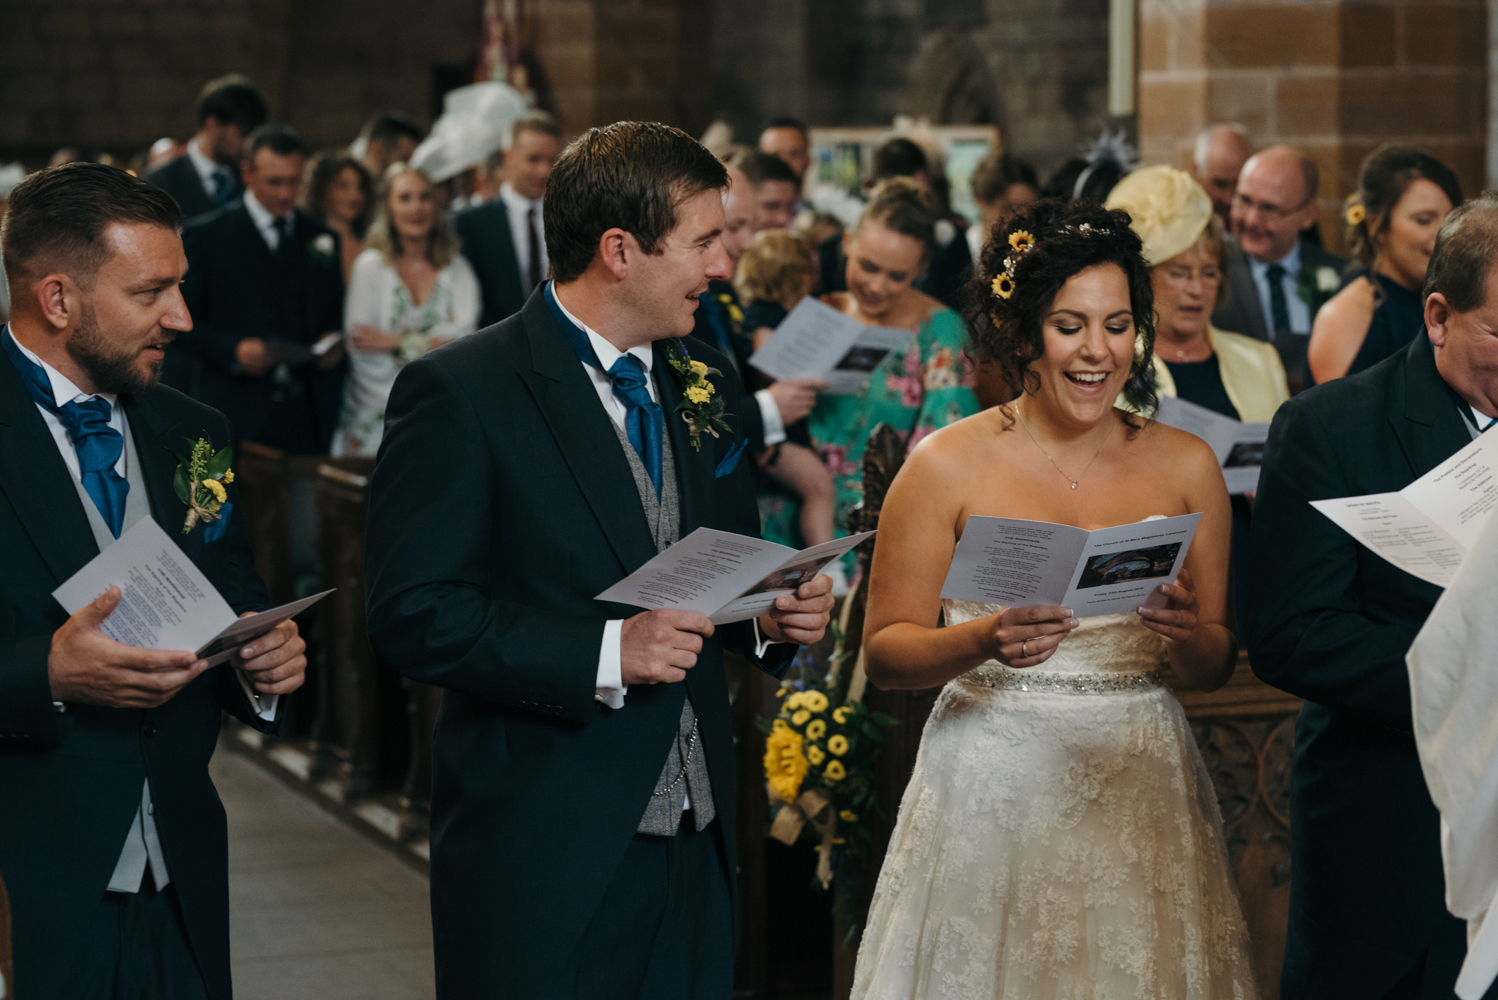 The bride and groom enjoying singing one of their chosen hymns